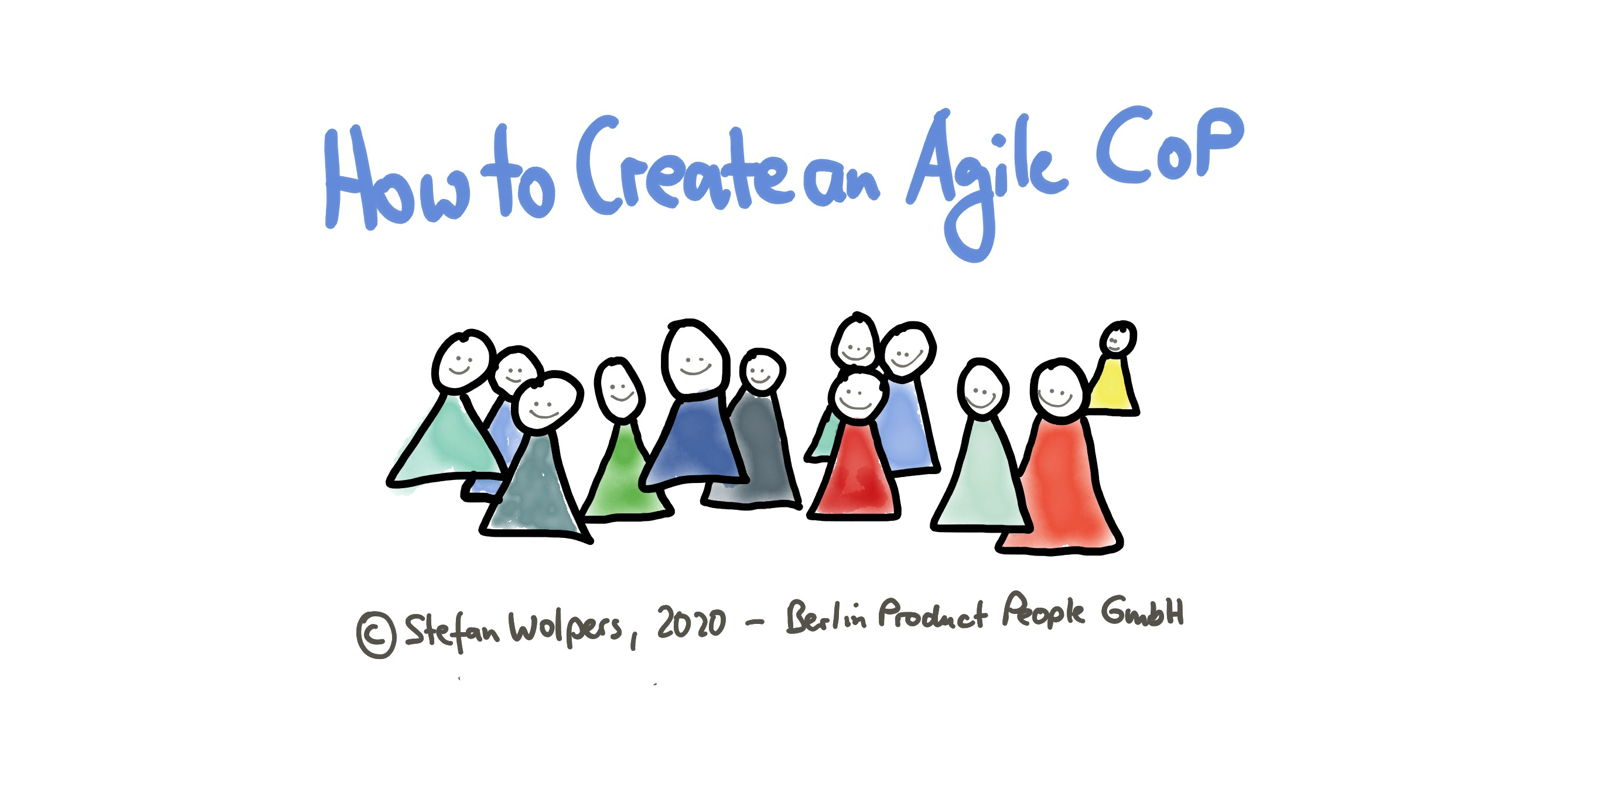 How to Create an Agile Community of Practice